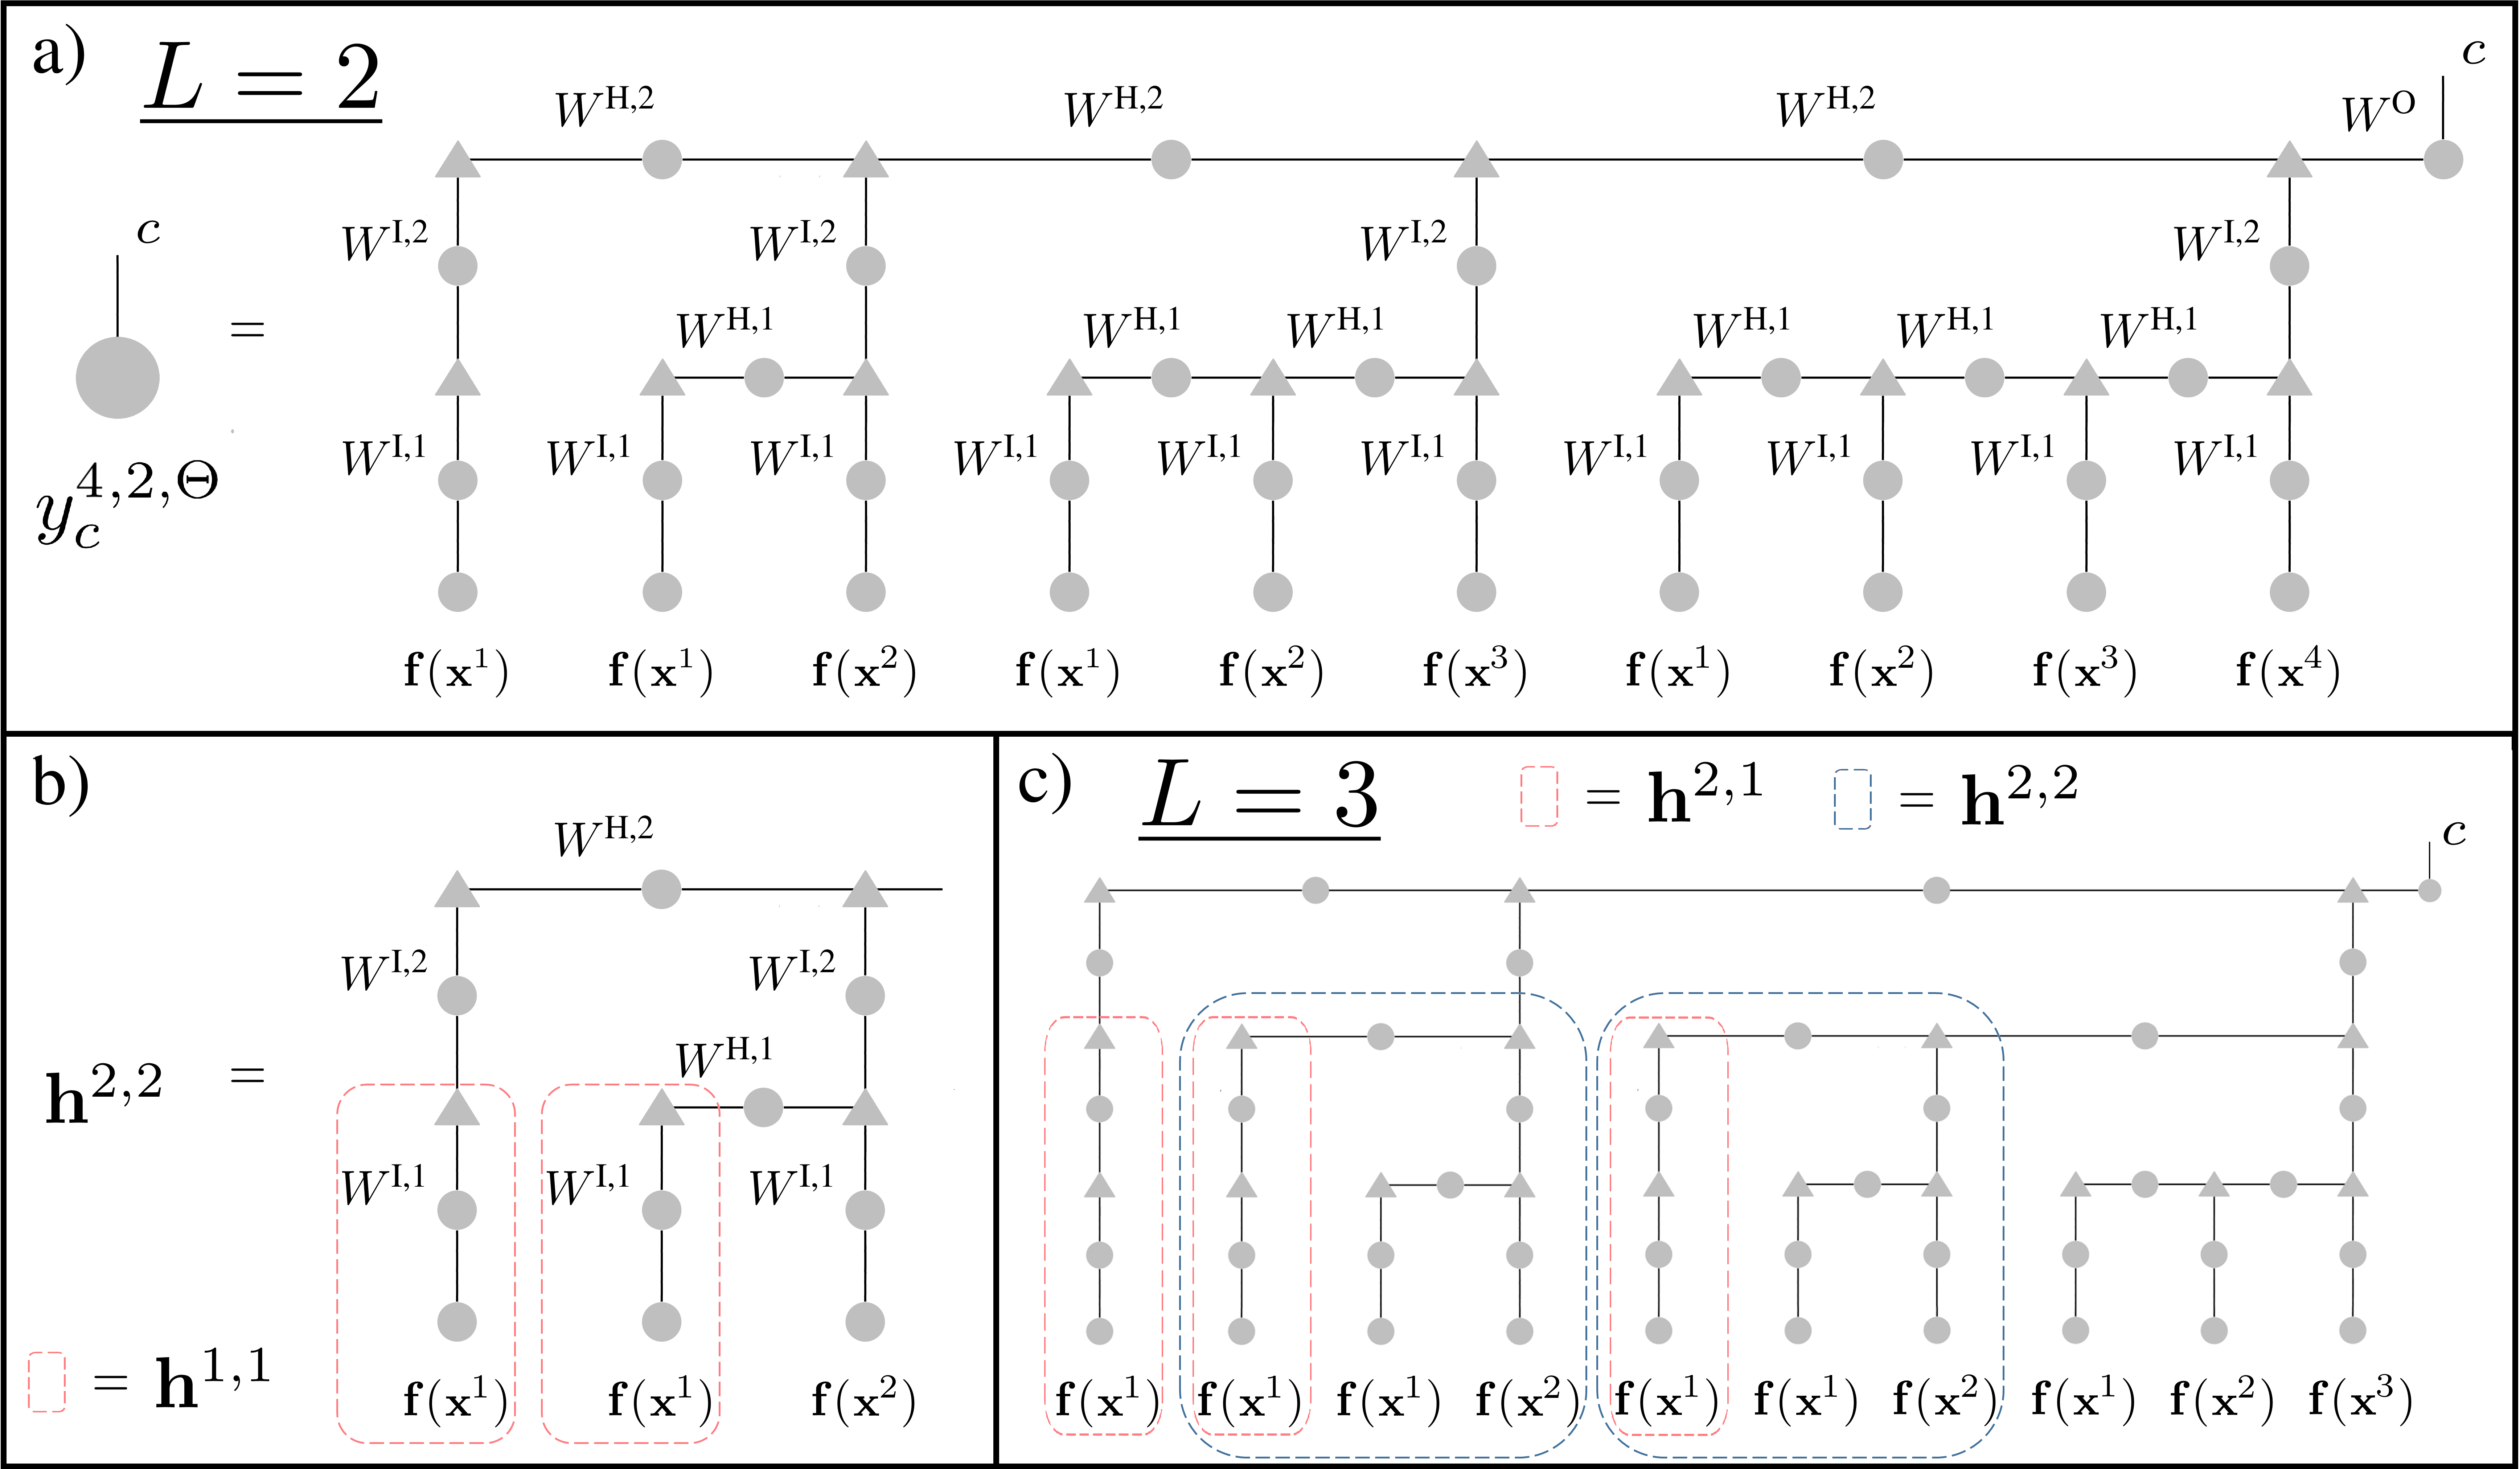 a) The Tensor Network representing the calculation preformed by a depth